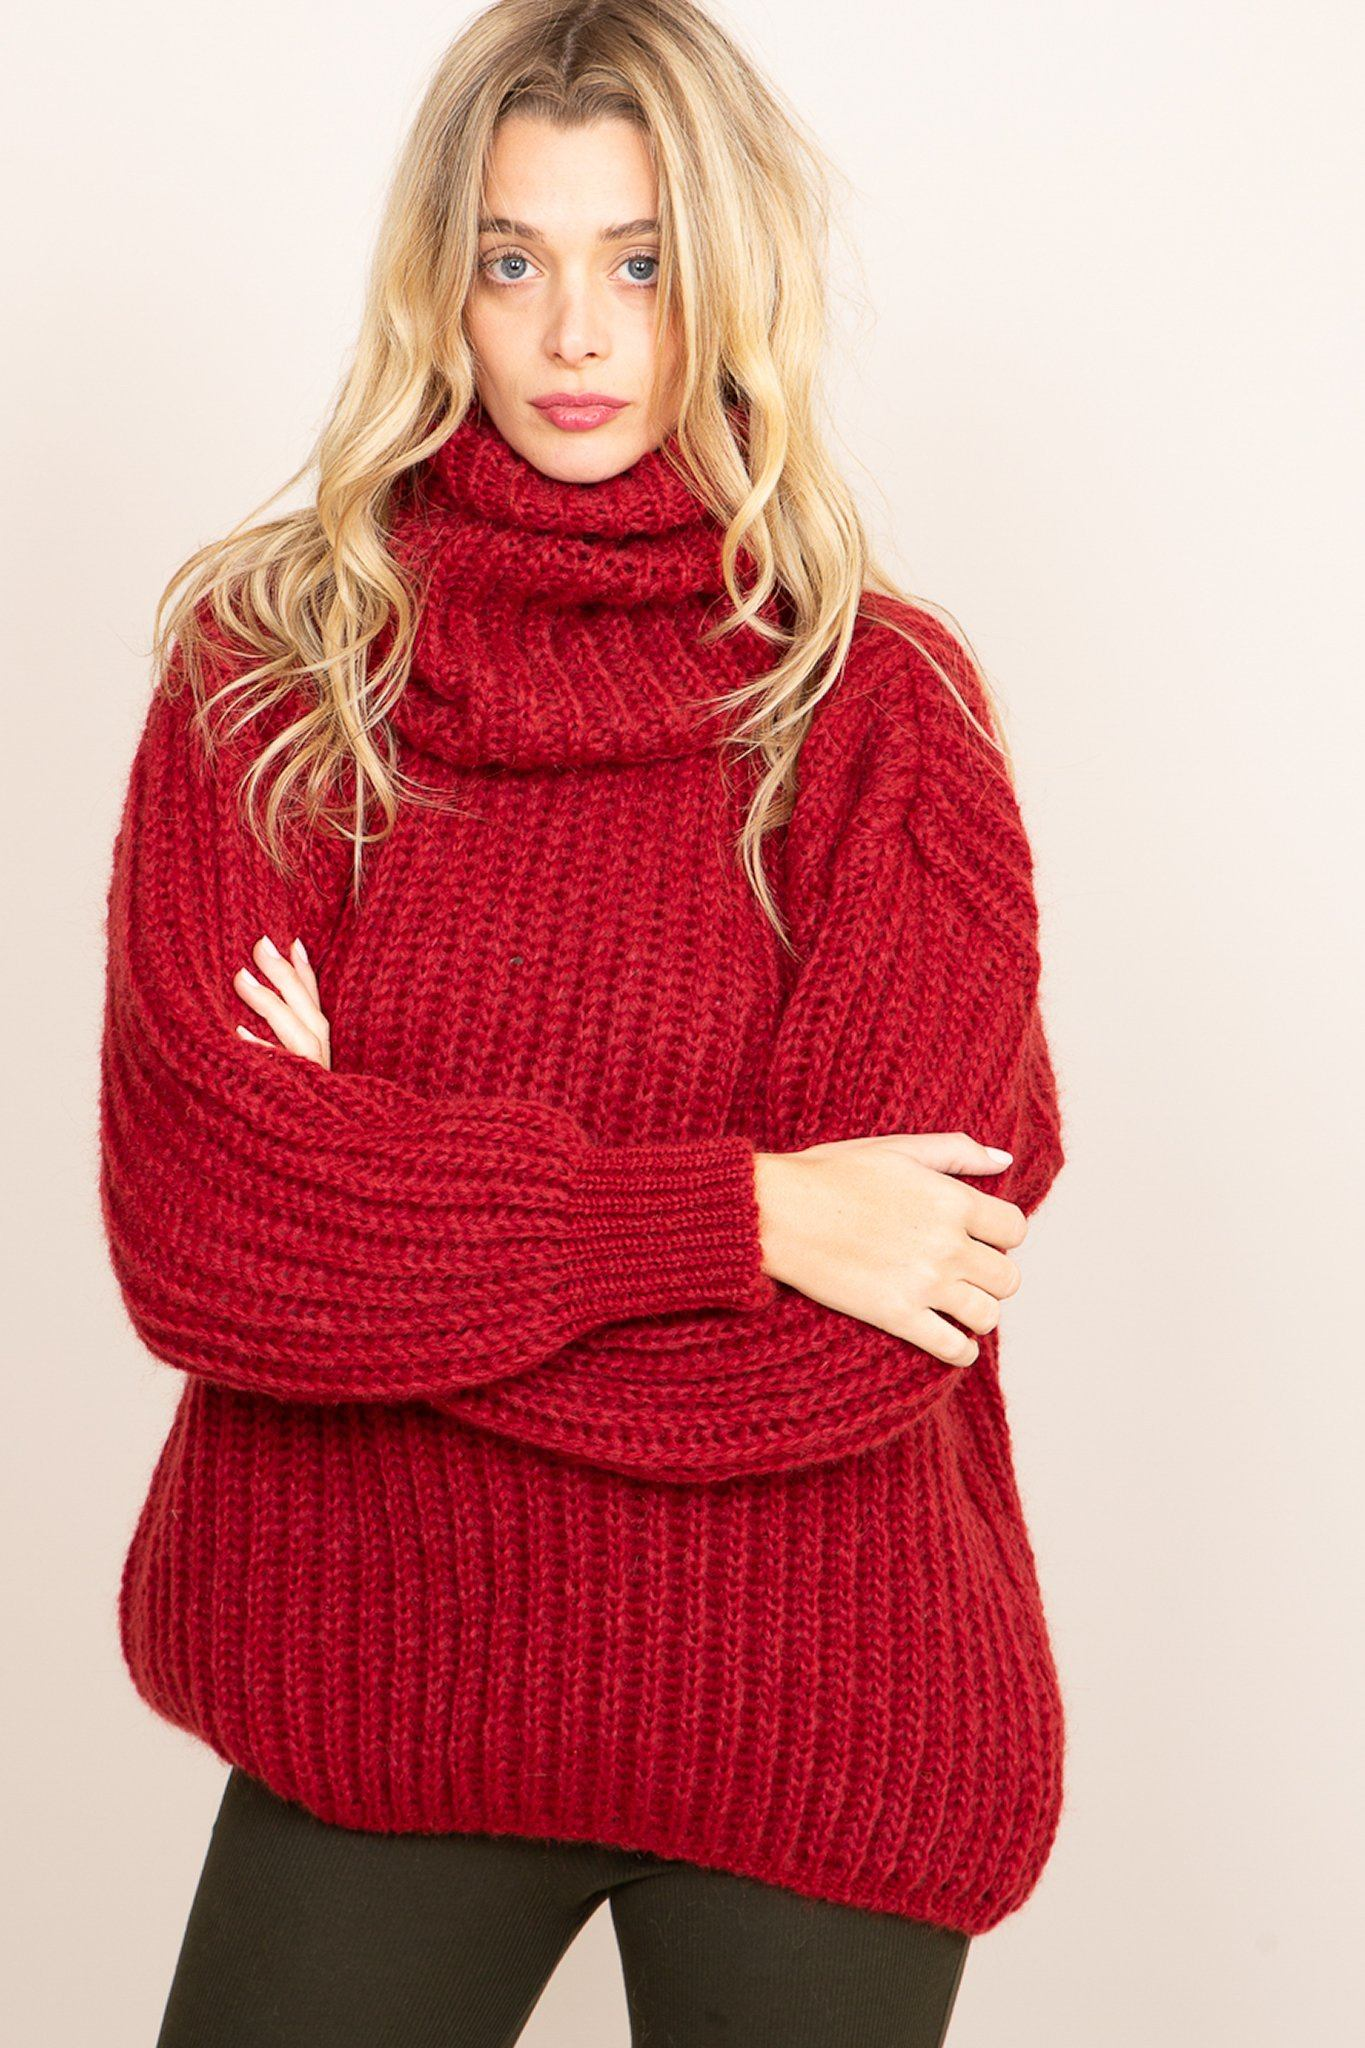 Annette Sweater - Red, [product_type]- Poppy Field the label